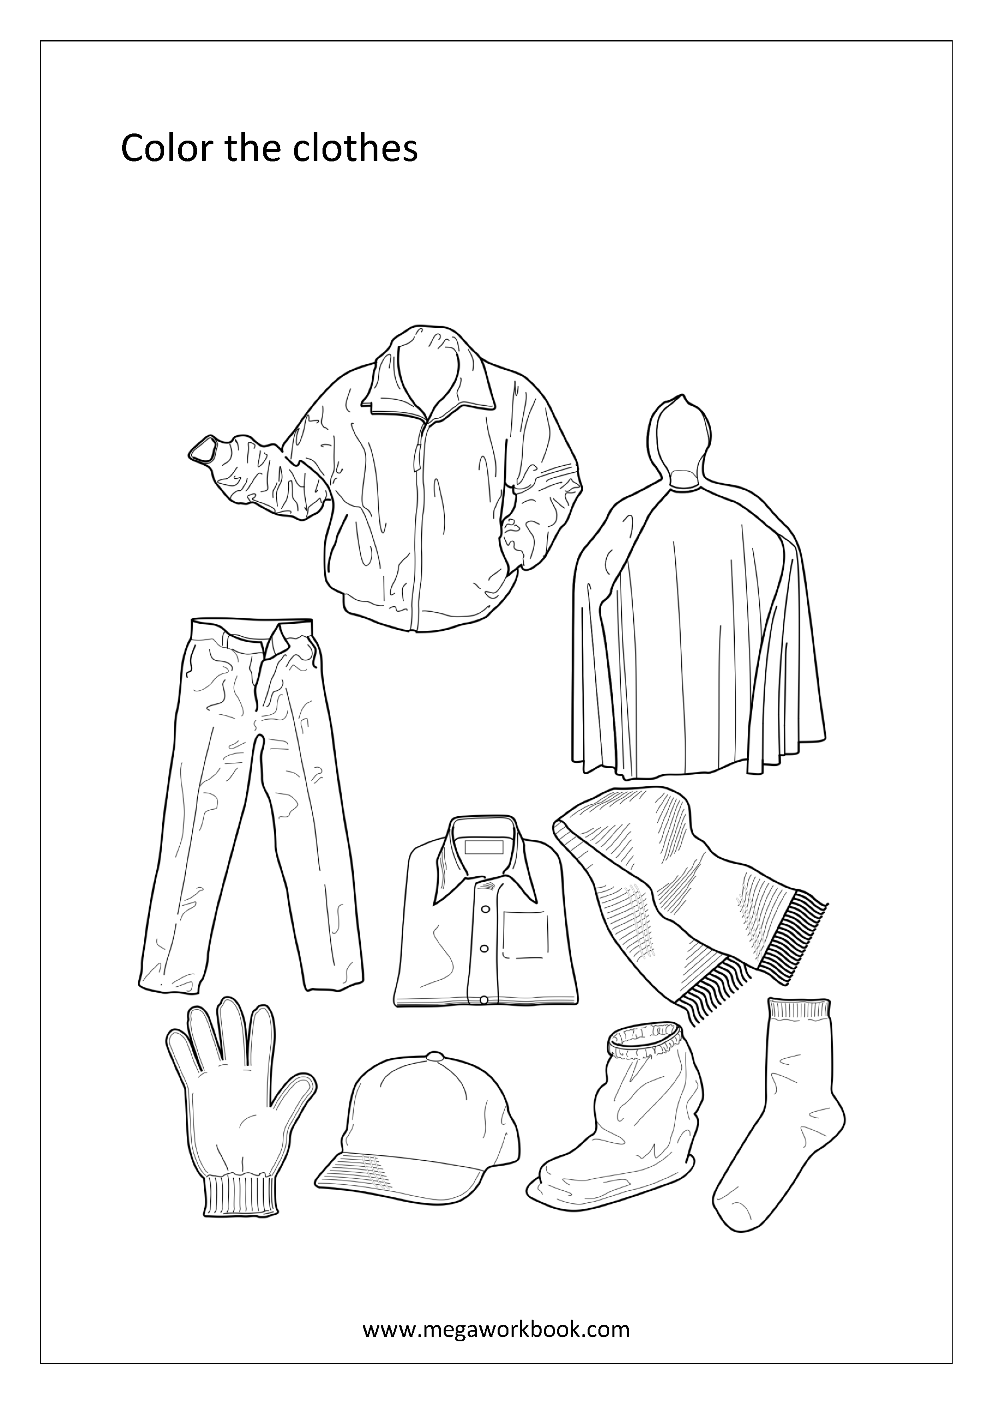 free coloring sheets - miscellaneous